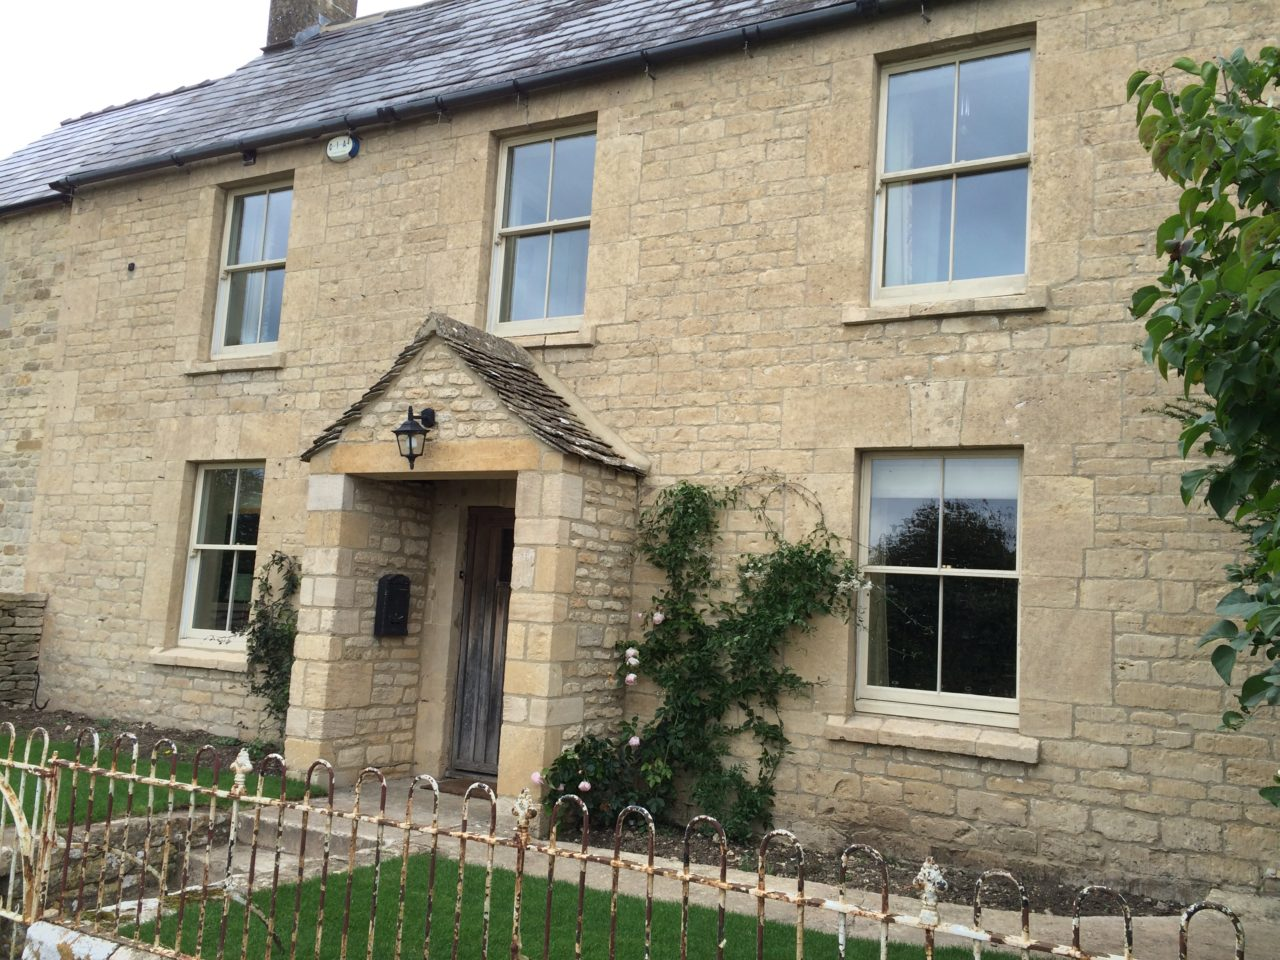 Cotswold Stone Cleaning – Winstone House, Cirencester After Cleaning